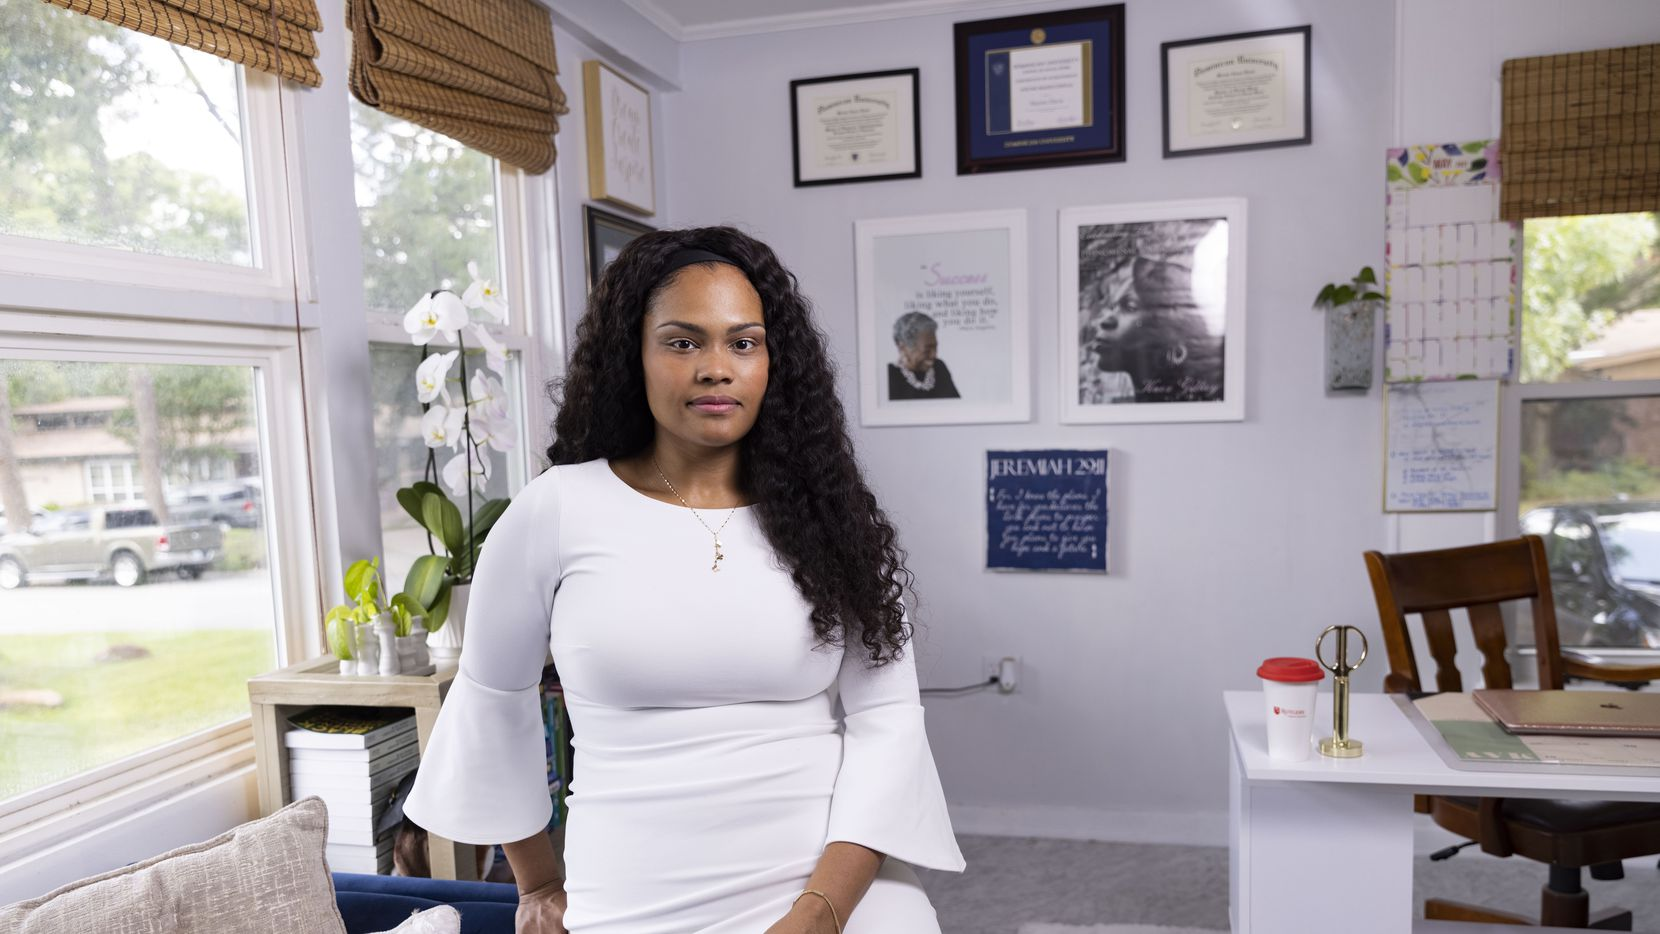 Dr. Maxine Davis poses for a photo in her office on Thursday, July 1, 2021, at her home in Arlington. Dr. Davis recently left her tenure track position at the University of Texas at Arlington. (Juan Figueroa/The Dallas Morning News)